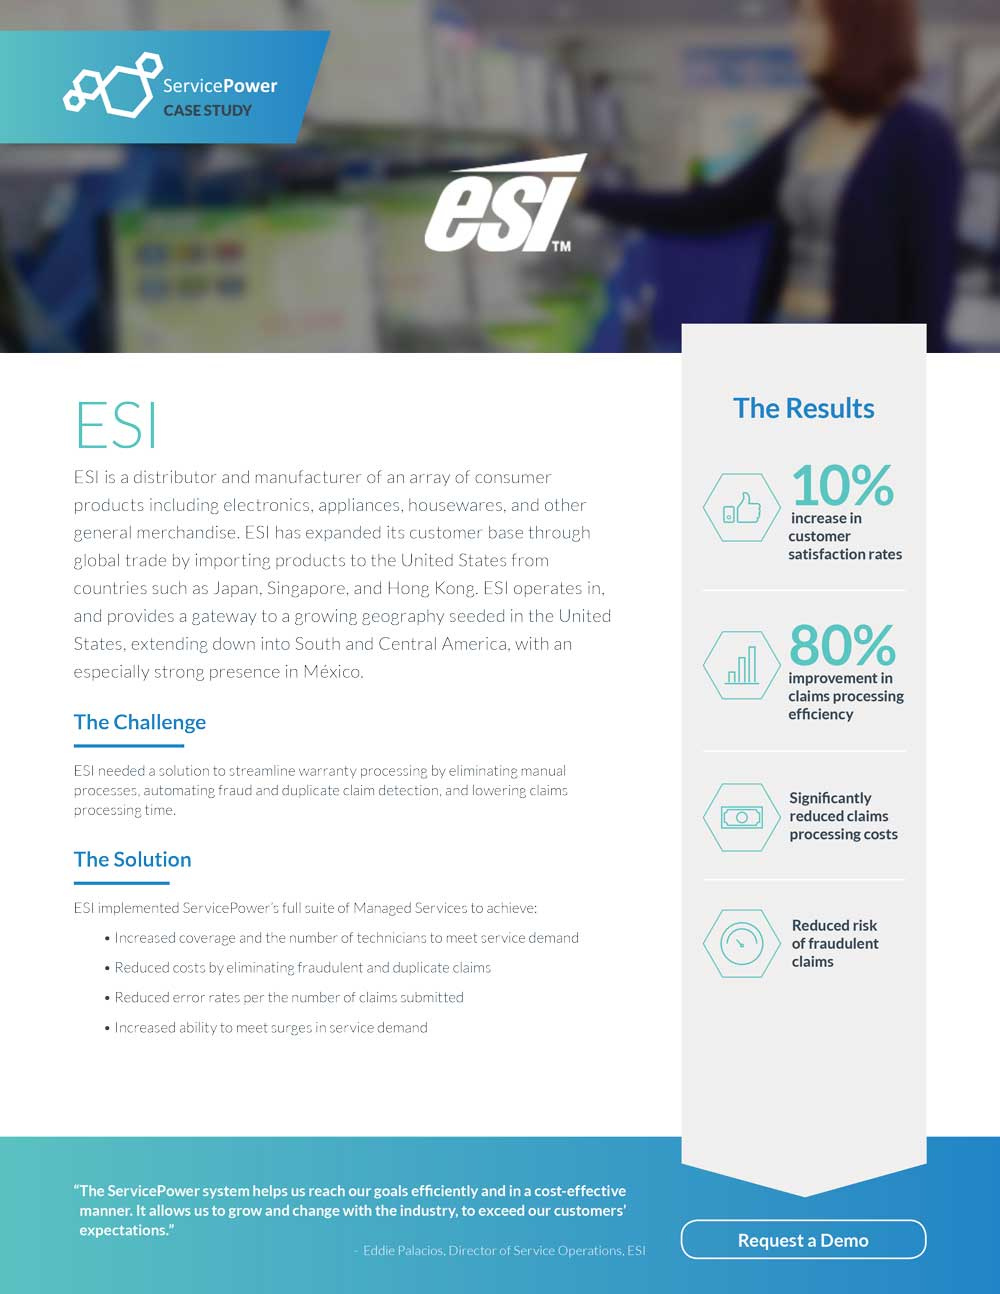 ESI Implemented ServicePower's Full Suite of Managed Services